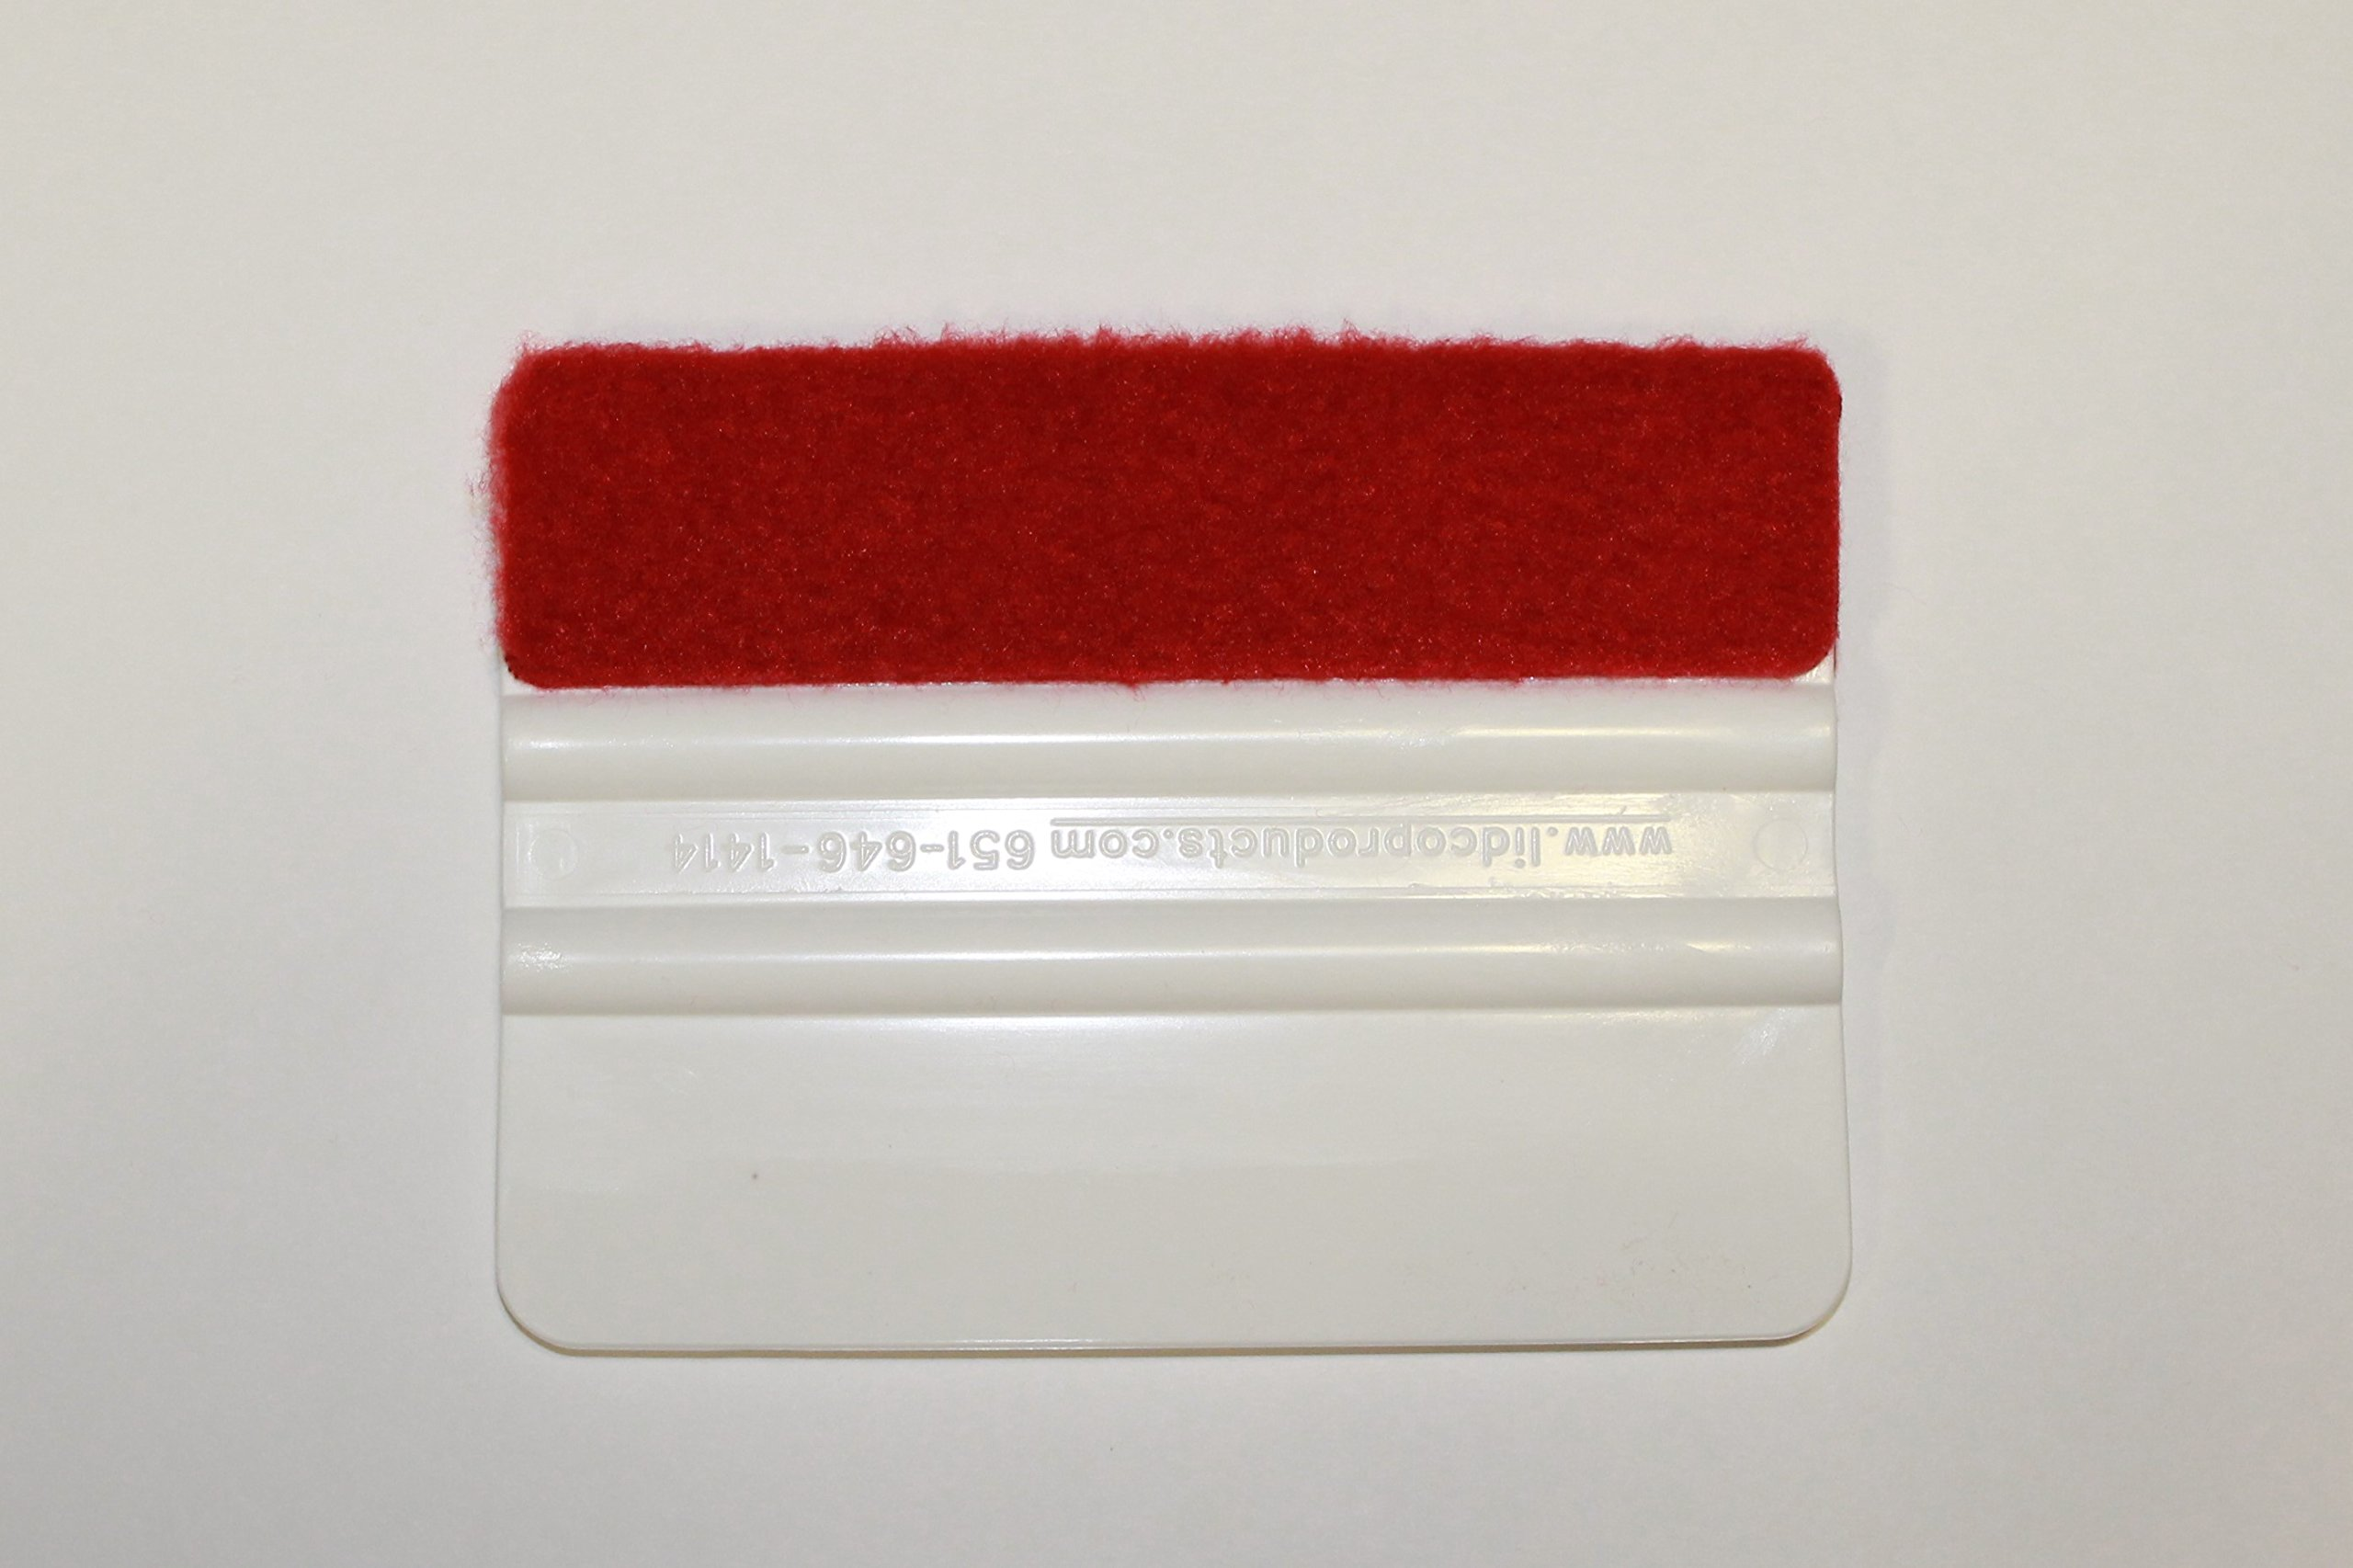 INDUSTRY STANDARD 4-INCH SQUEEGEE/ROLLEPRO WRAPIDGLIDE MICRO-FLEECE SQUEEGEE COVERS by Rollepro (Image #3)